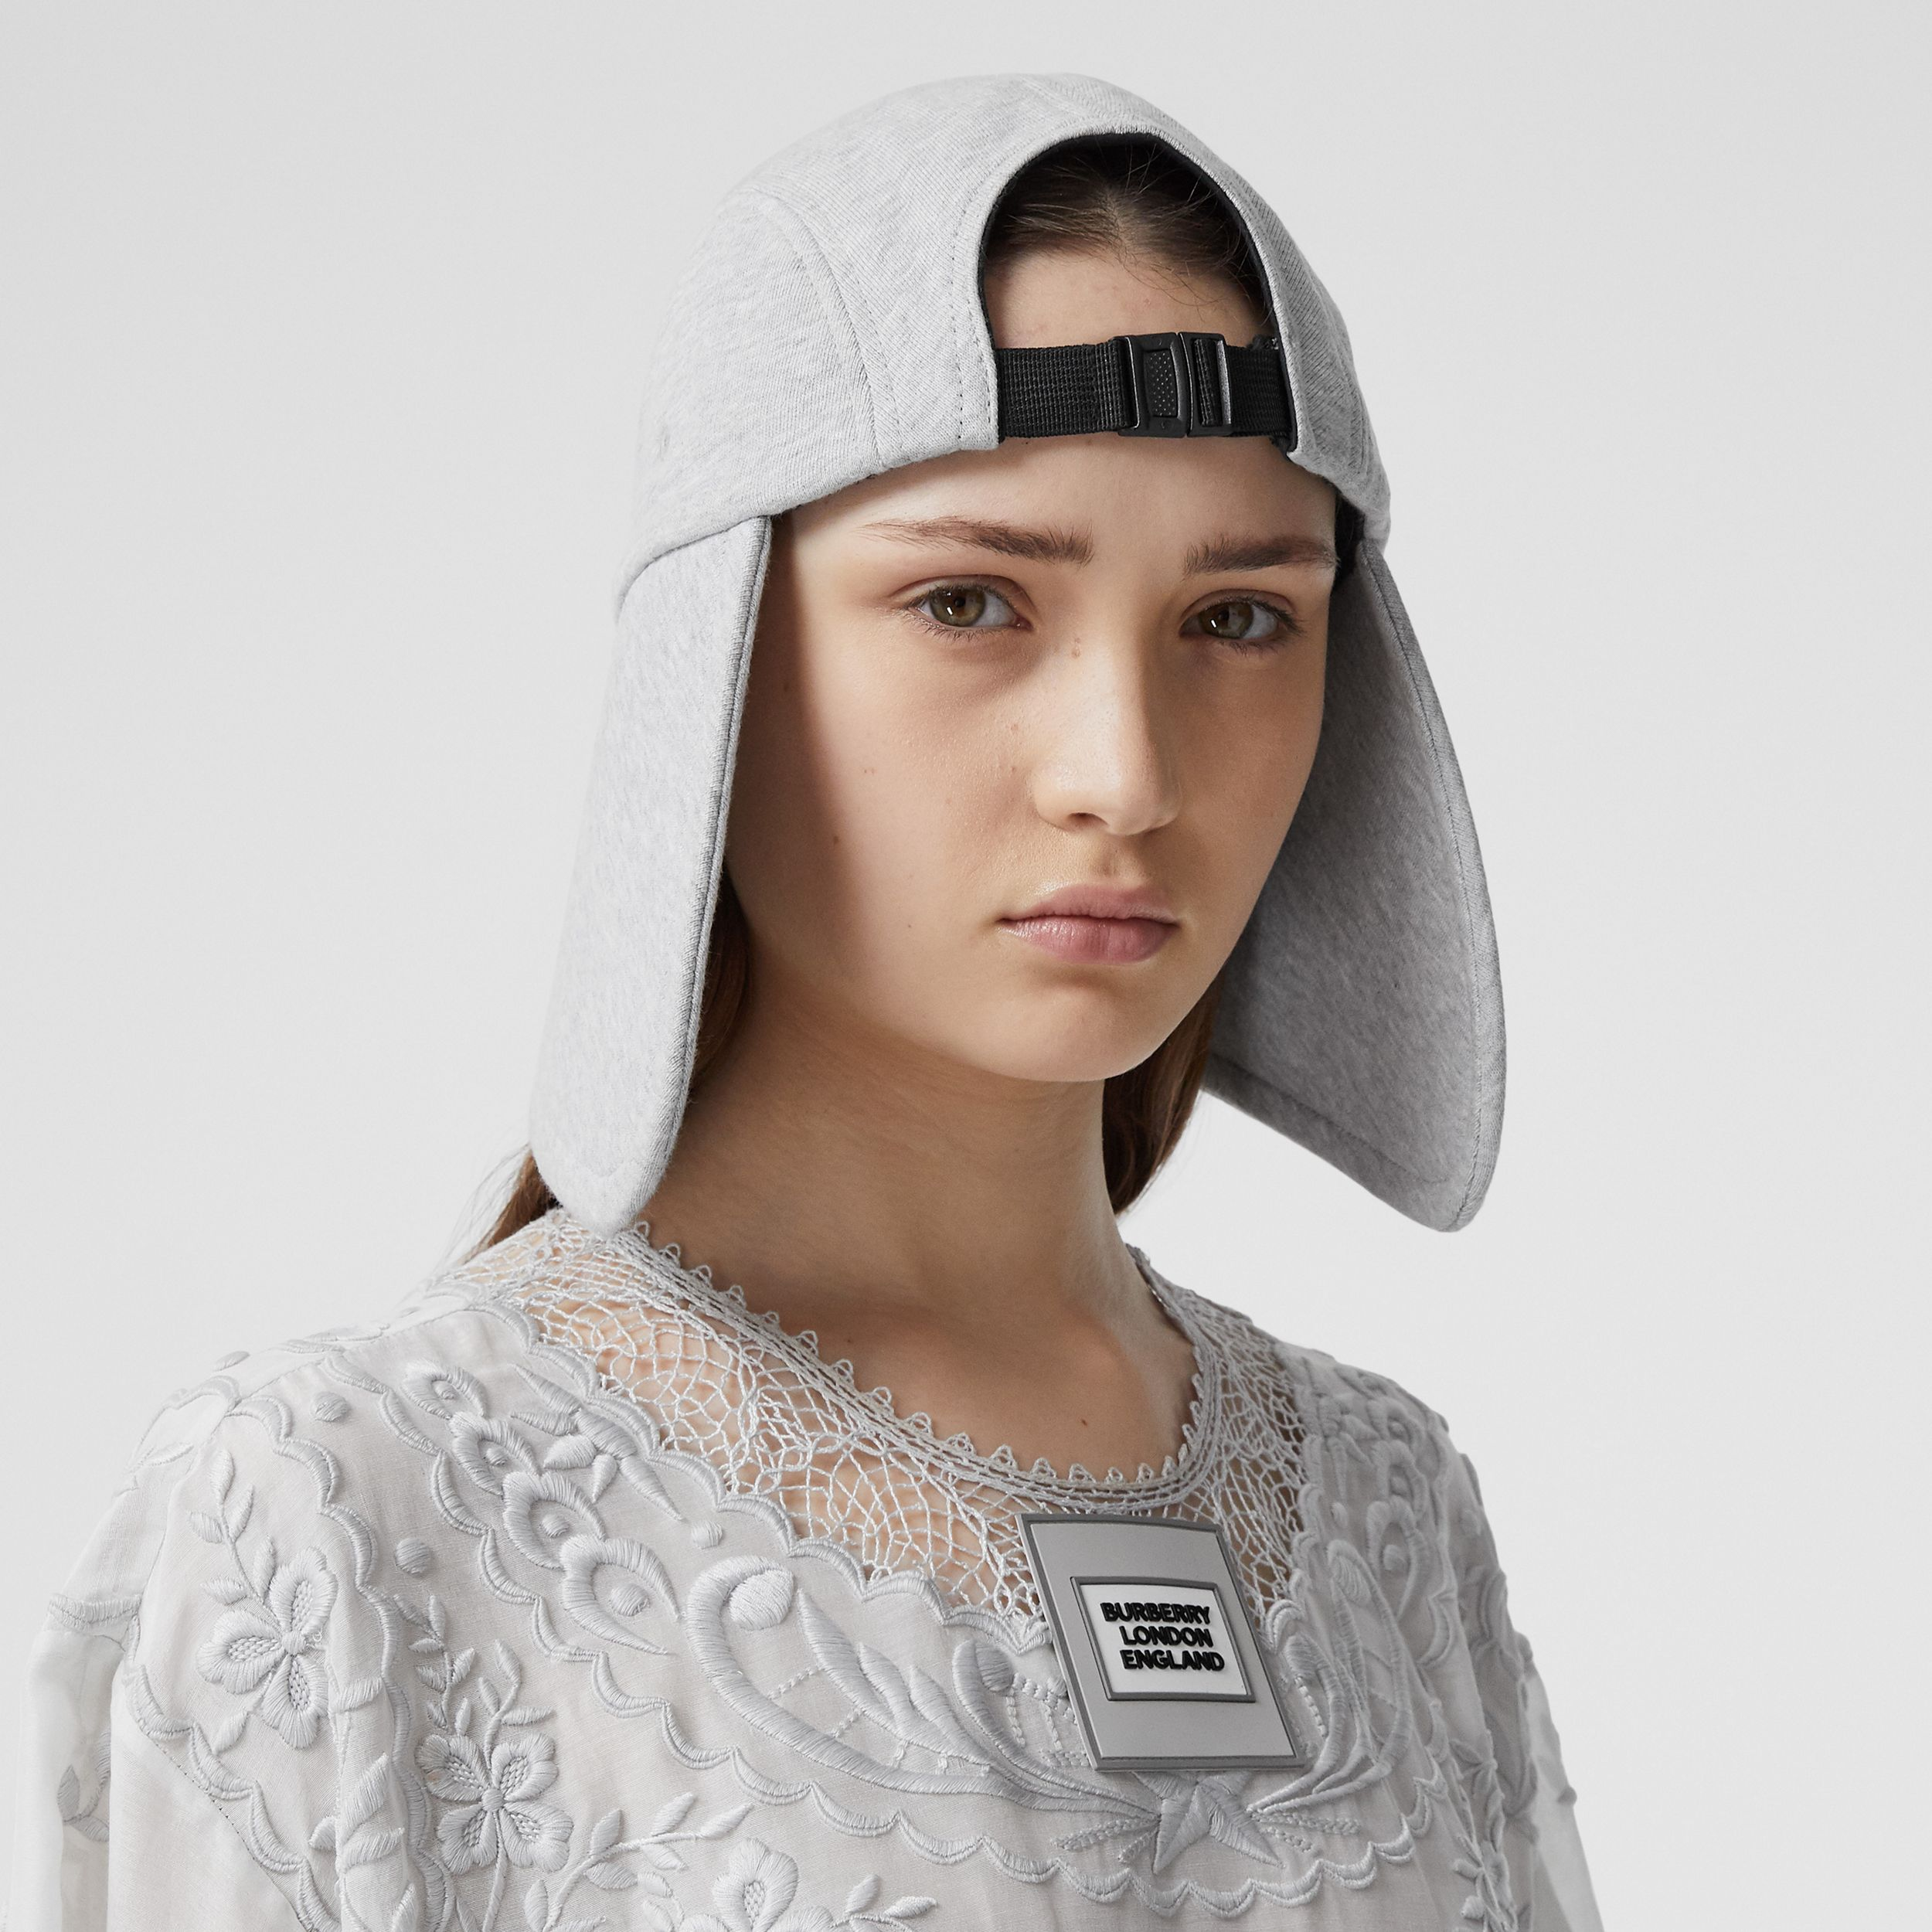 Logo Appliqué Cotton Jersey Bonnet Cap in Light Pebble Grey | Burberry - 2